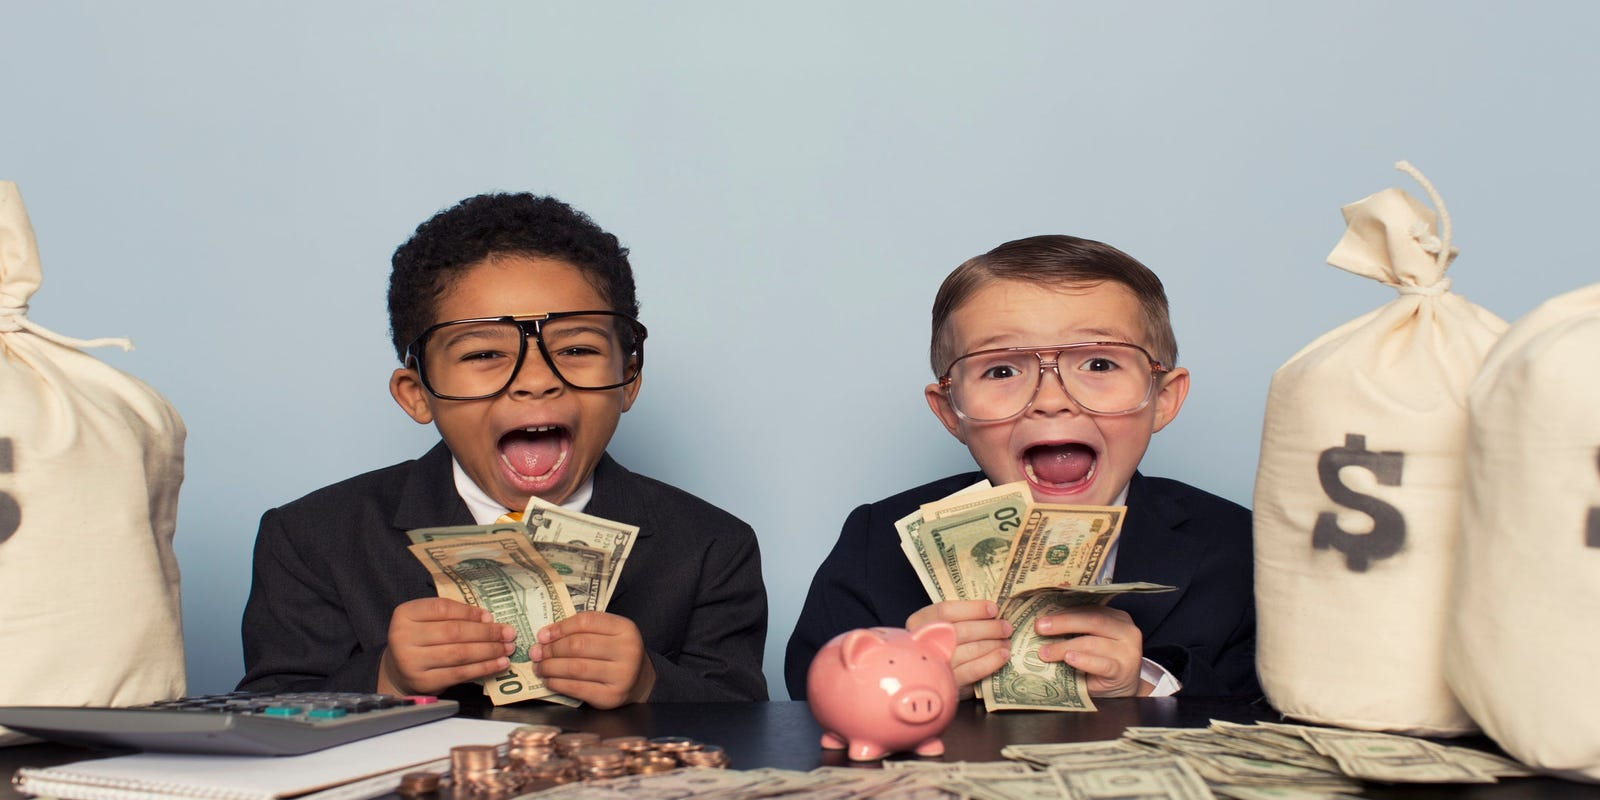 Set your kid for financial success: Here's how to turn your child into a tax-free millionaire for $25 a day